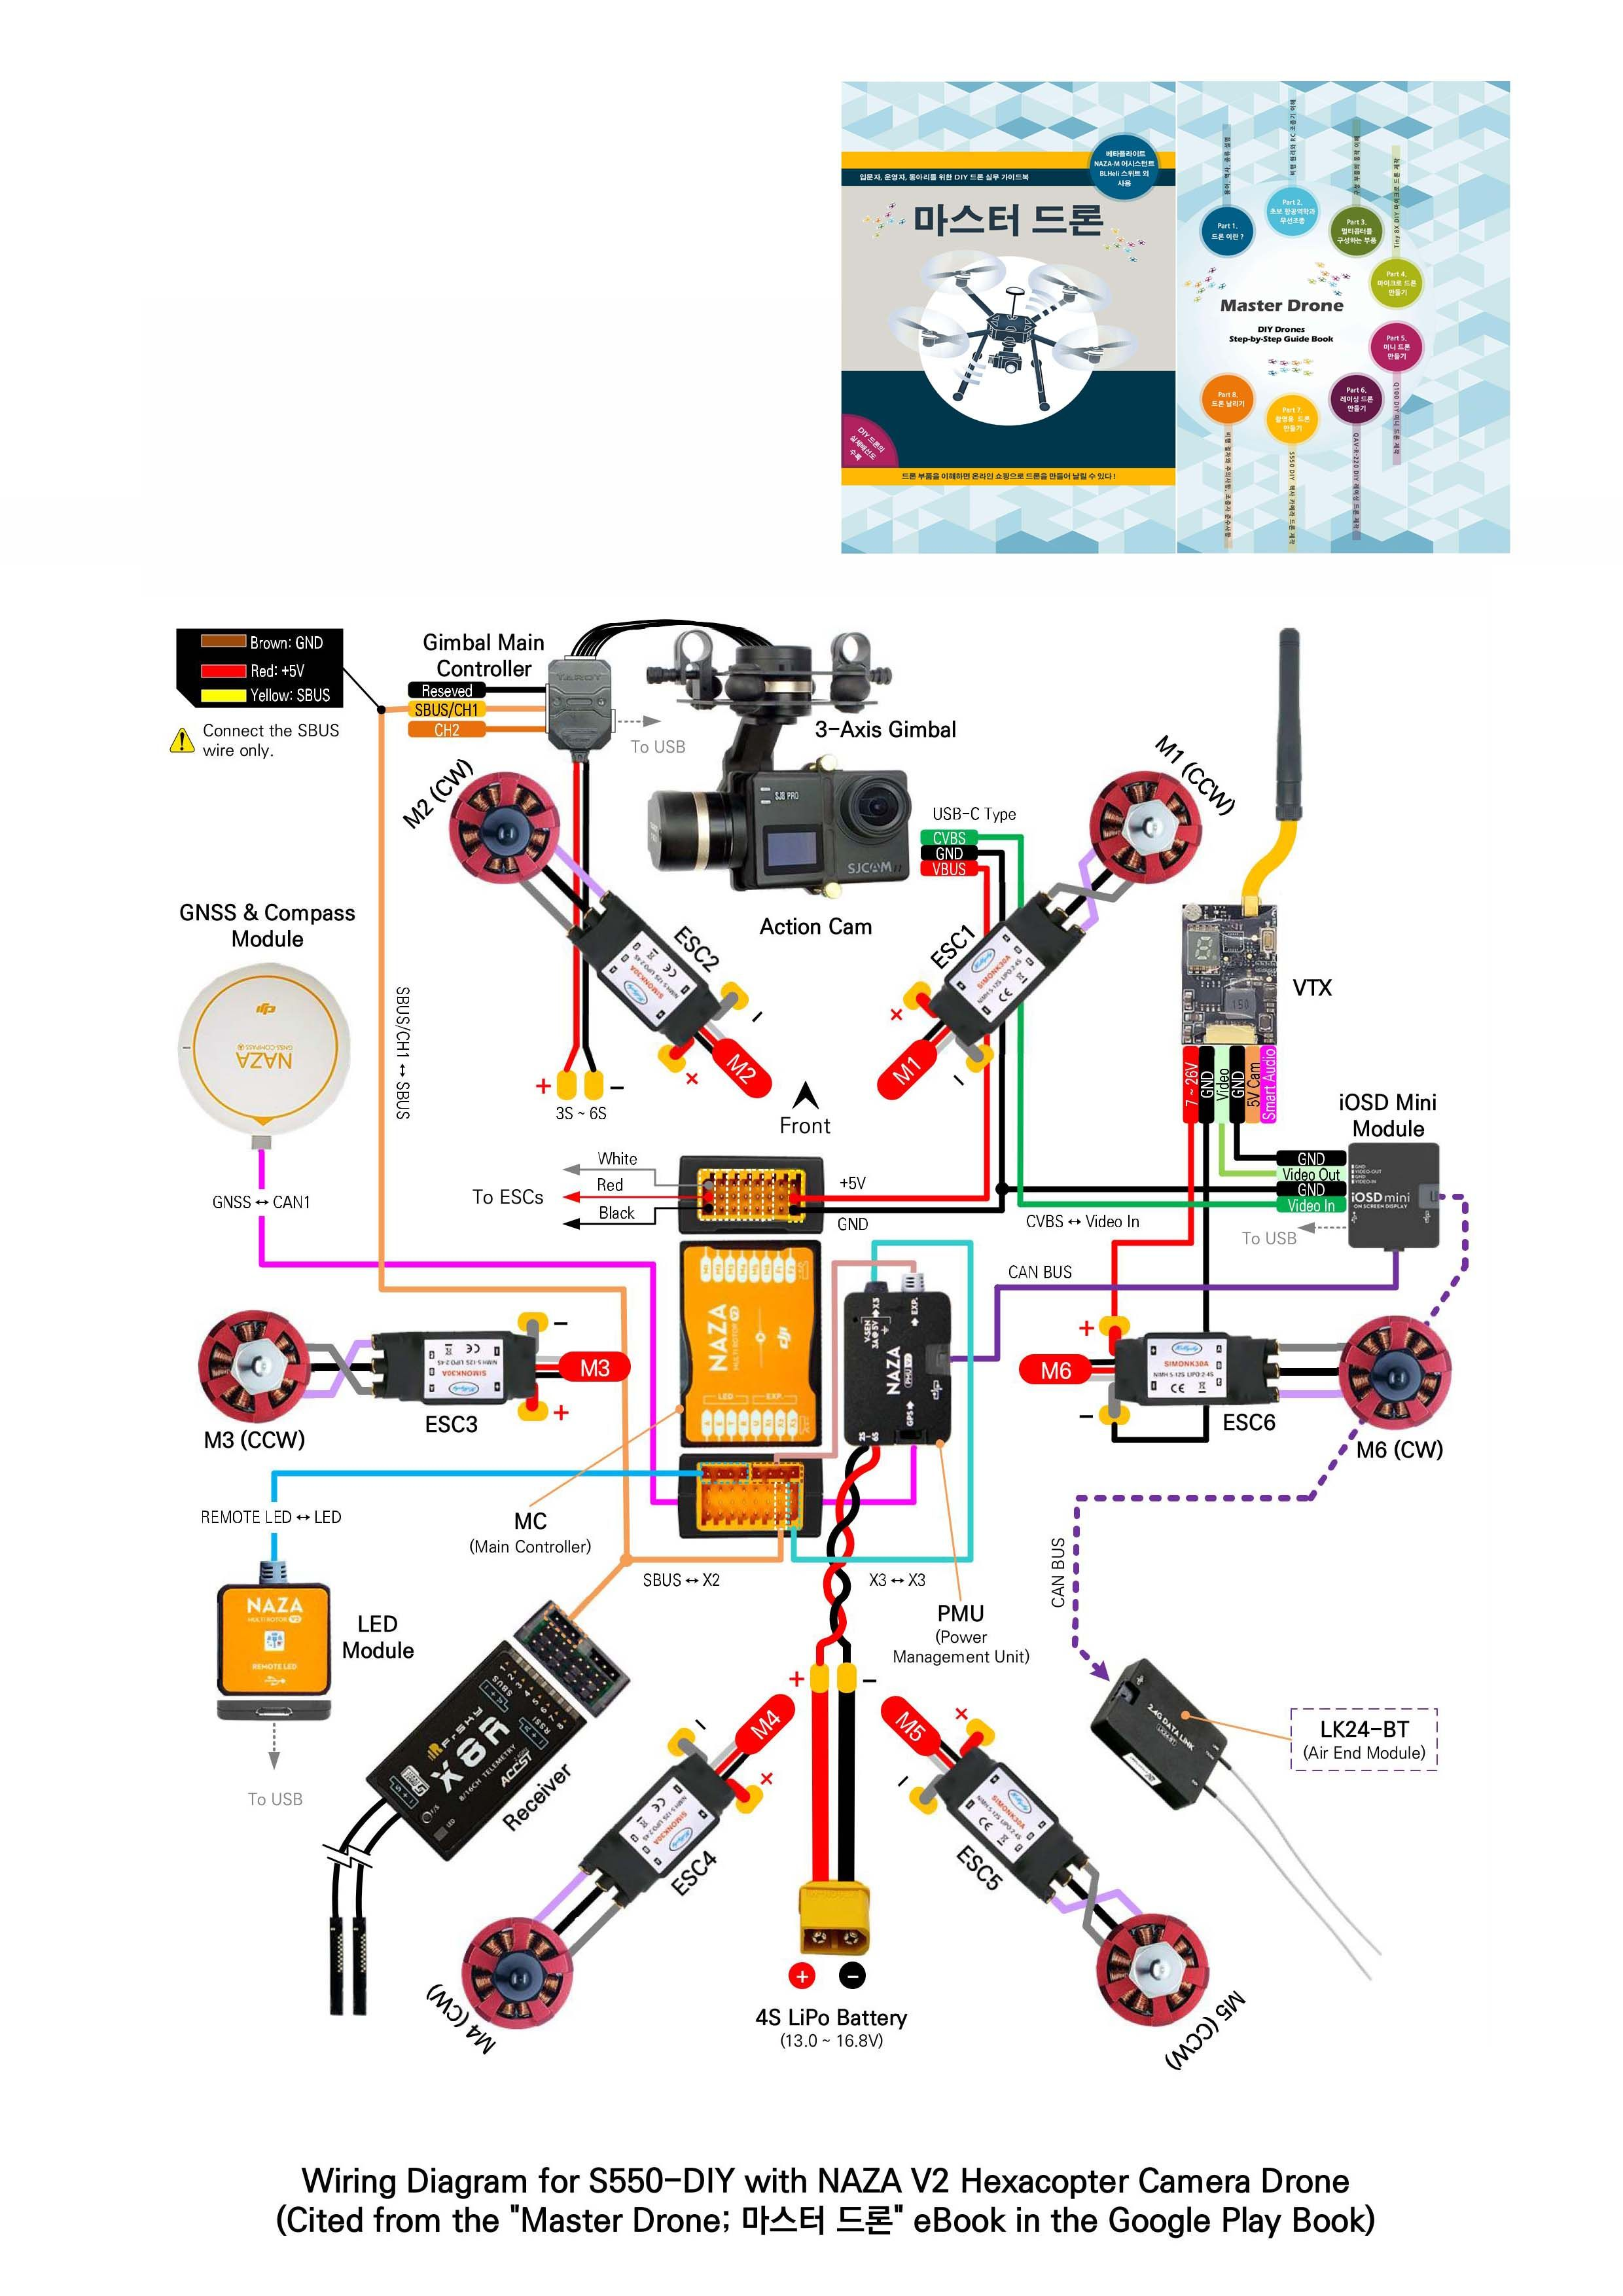 Connection Diagram for the S550-DIY Camera Drone | 드론, 대학원www.pinterest.co.kr